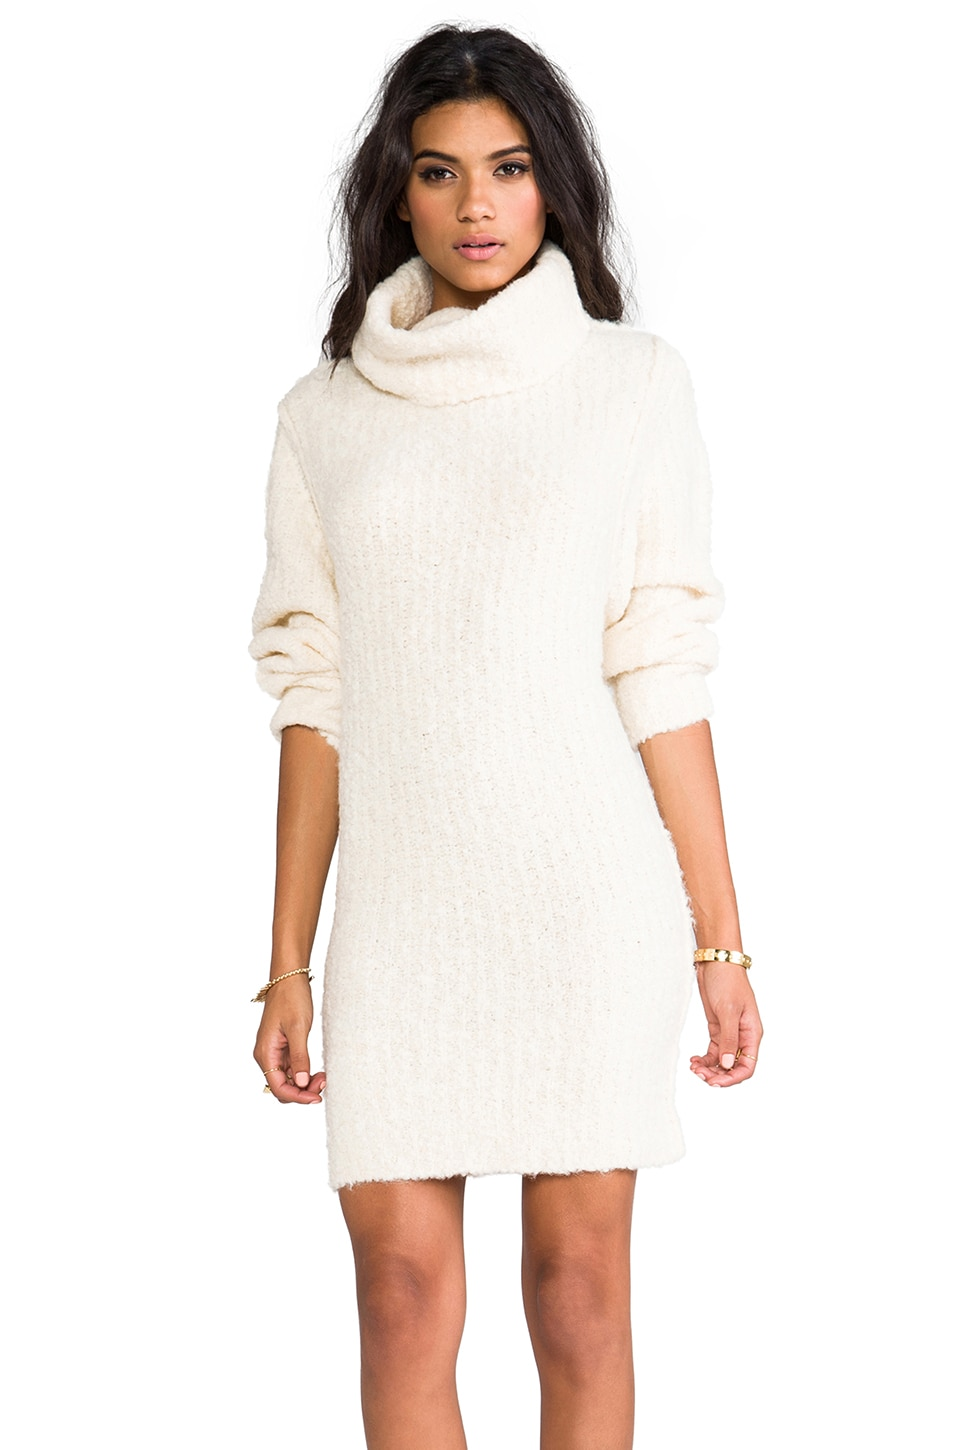 SONIA by Sonia Rykiel Sweater Dress in Dream